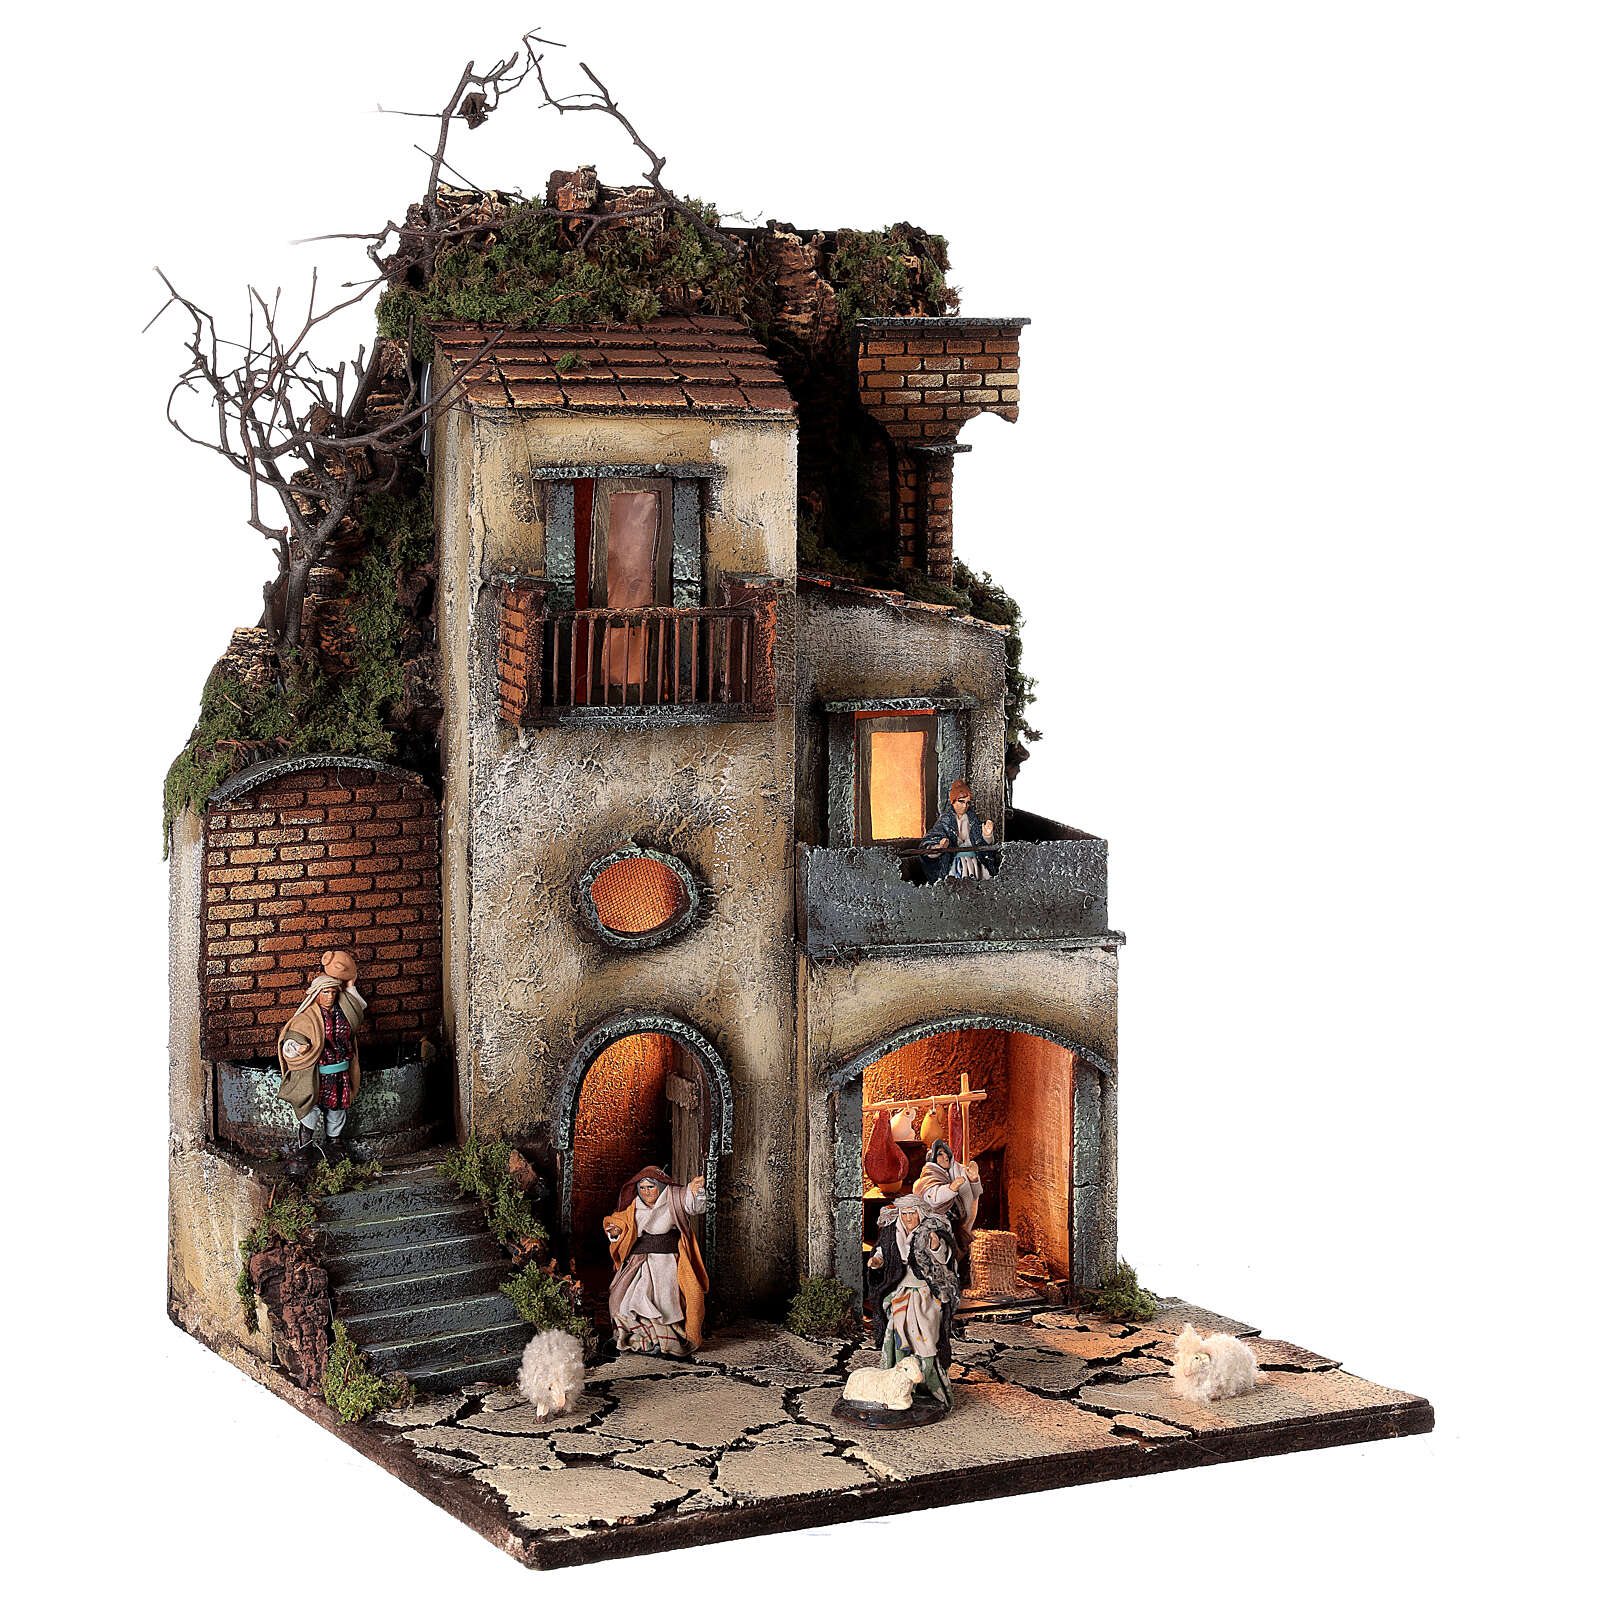 Neapolitan nativity village with 8 cm figures 55x40x40 module 1 4